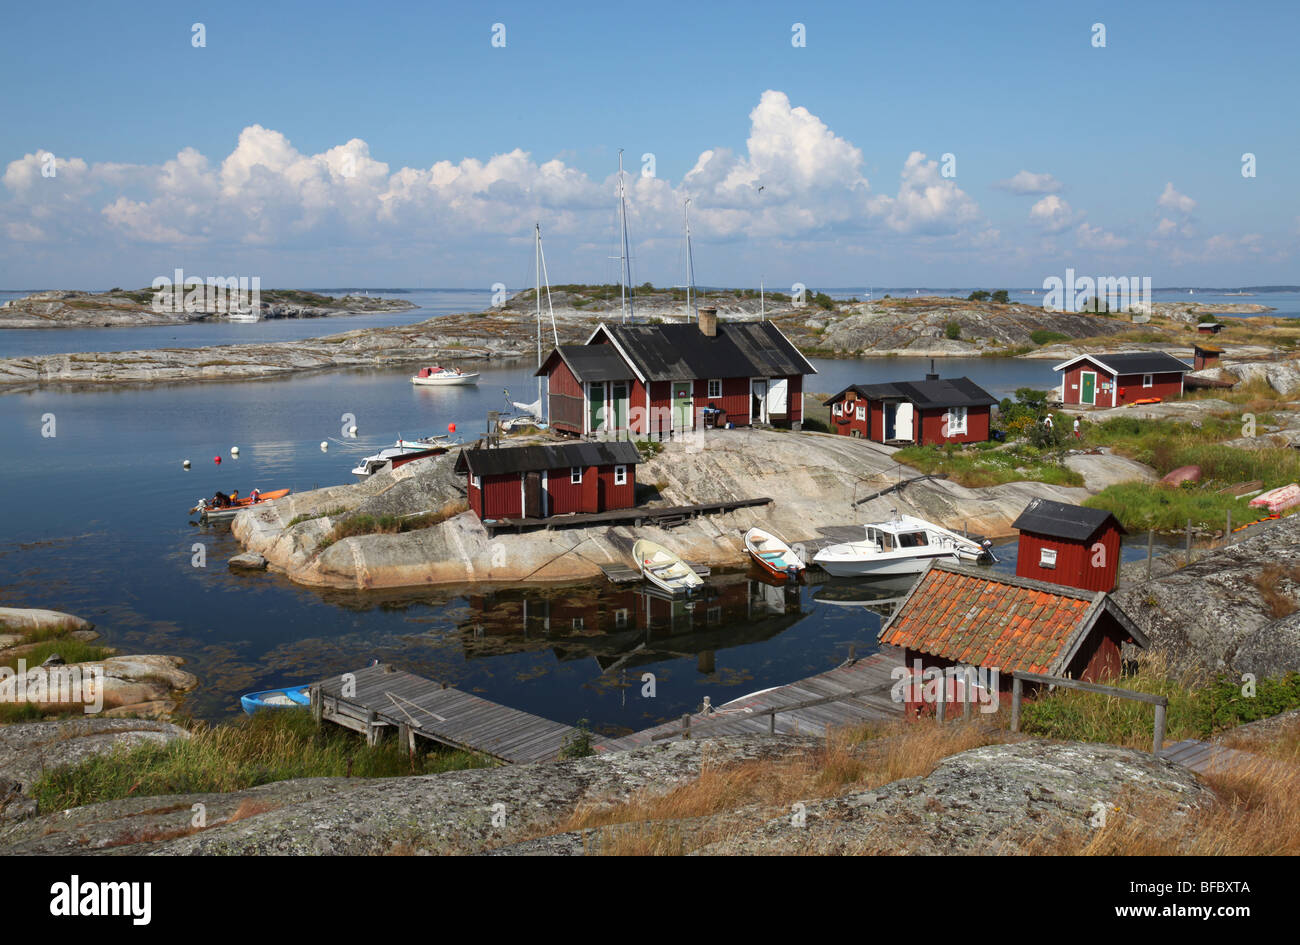 Small old village on island - Stock Image